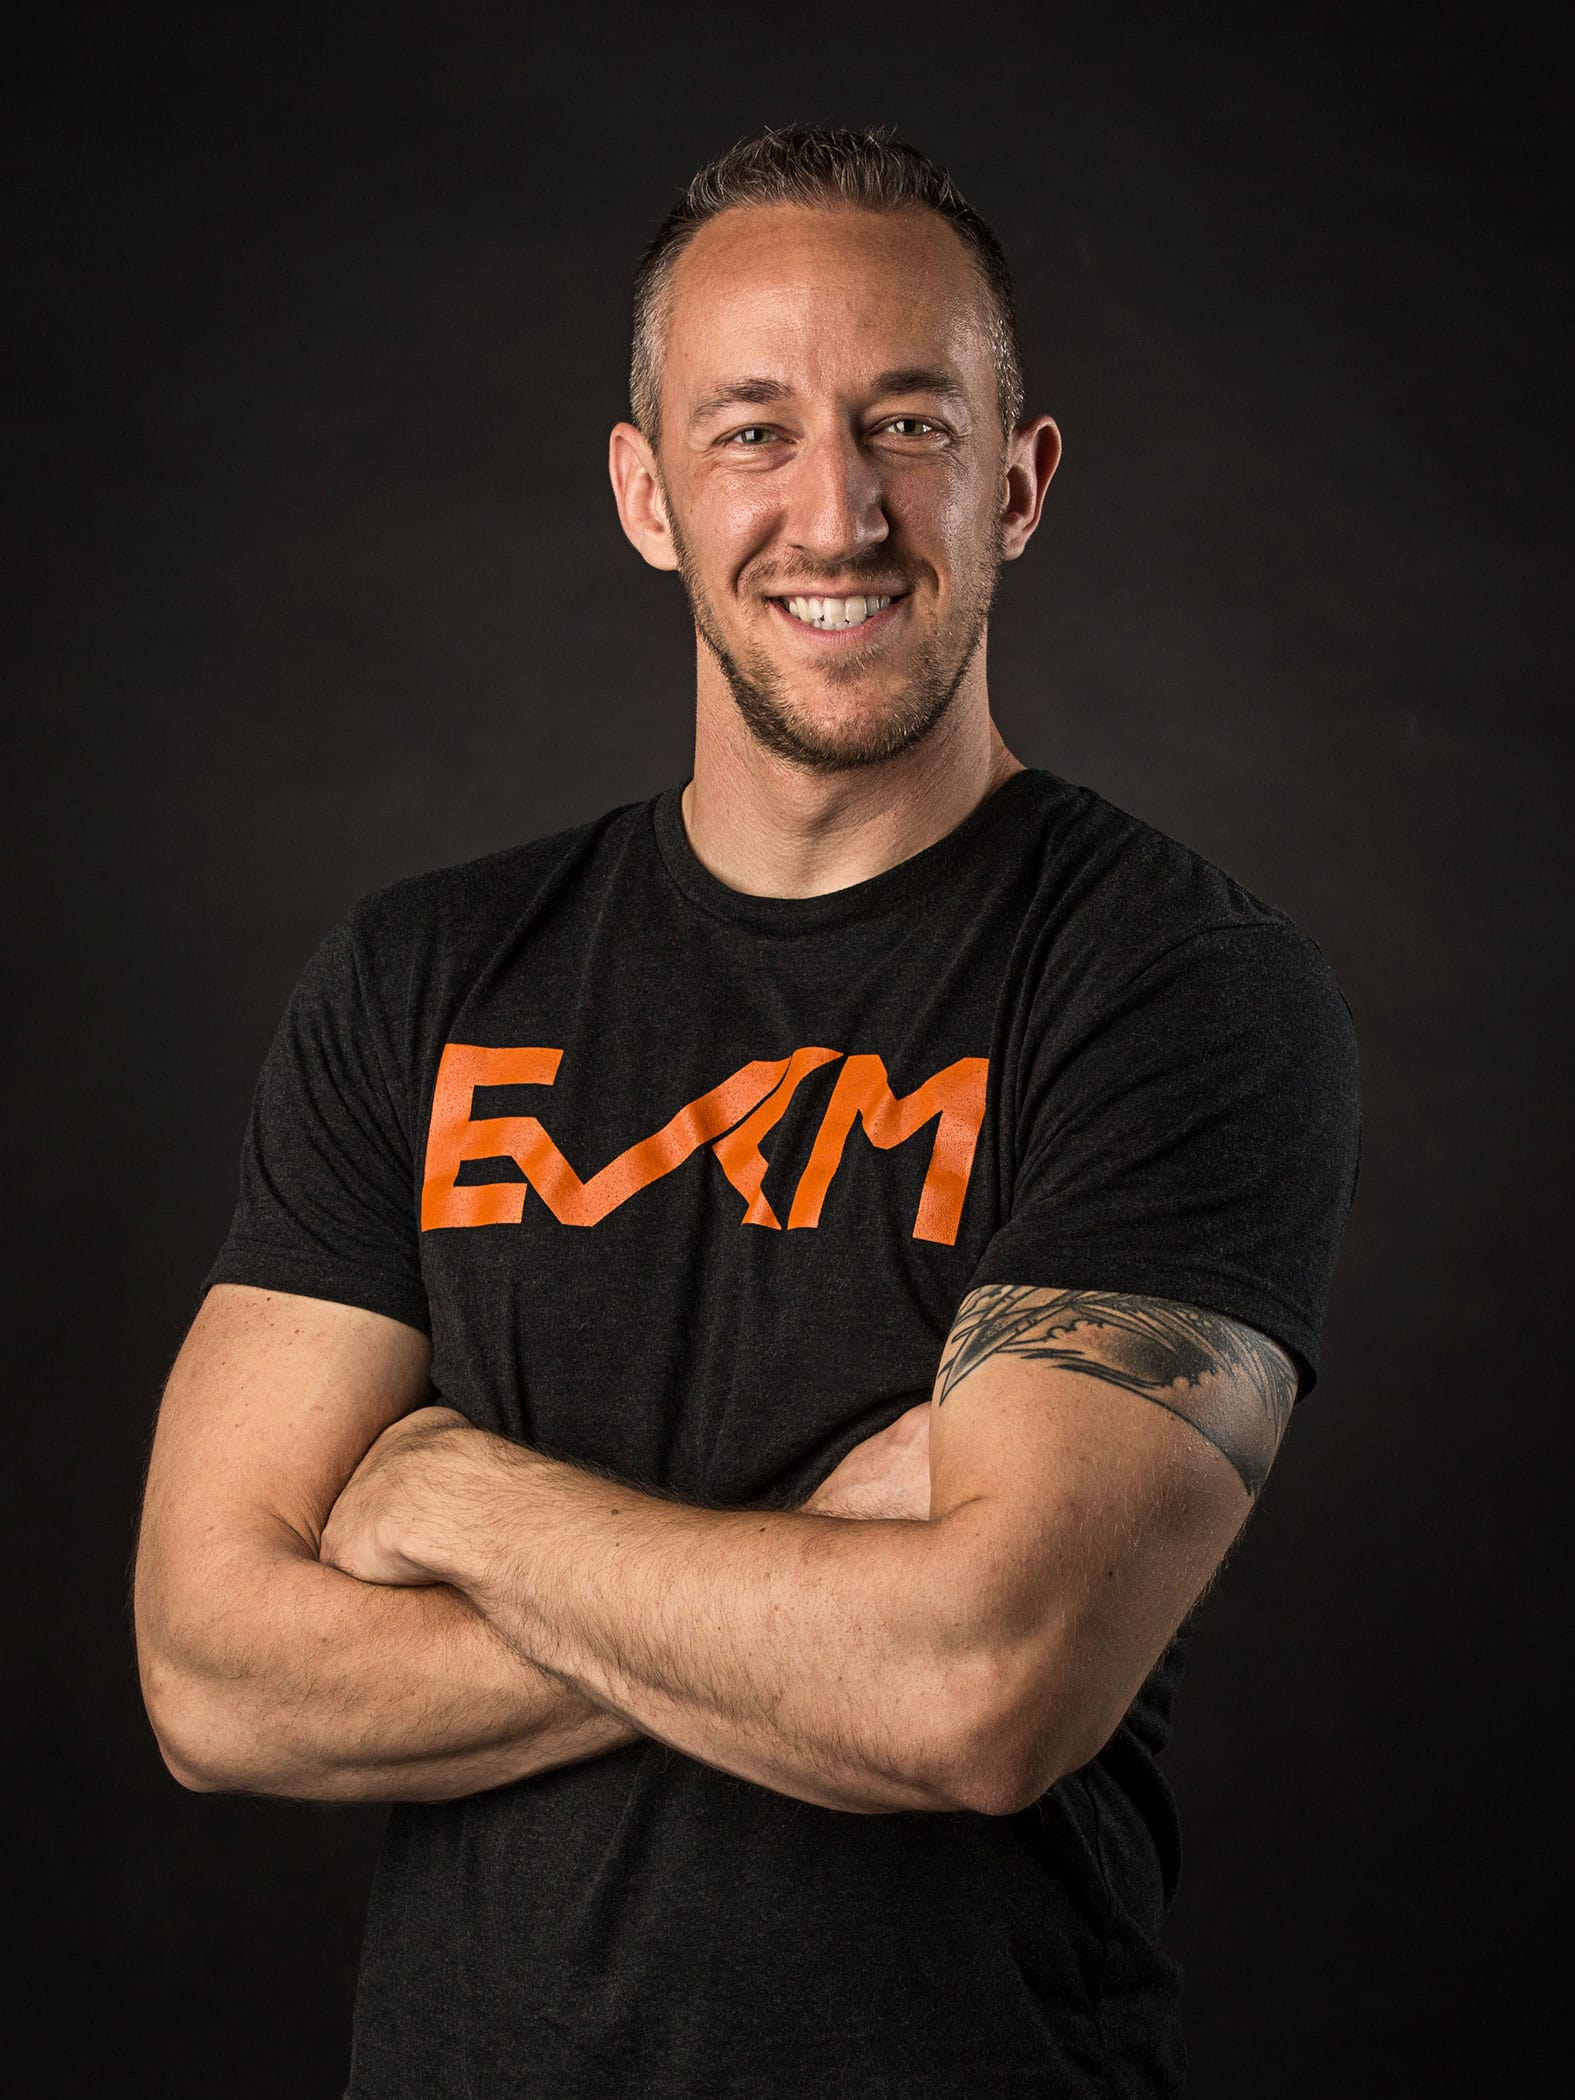 Derrek Hofrichter in Phoenix - EVKM Self Defense & Fitness